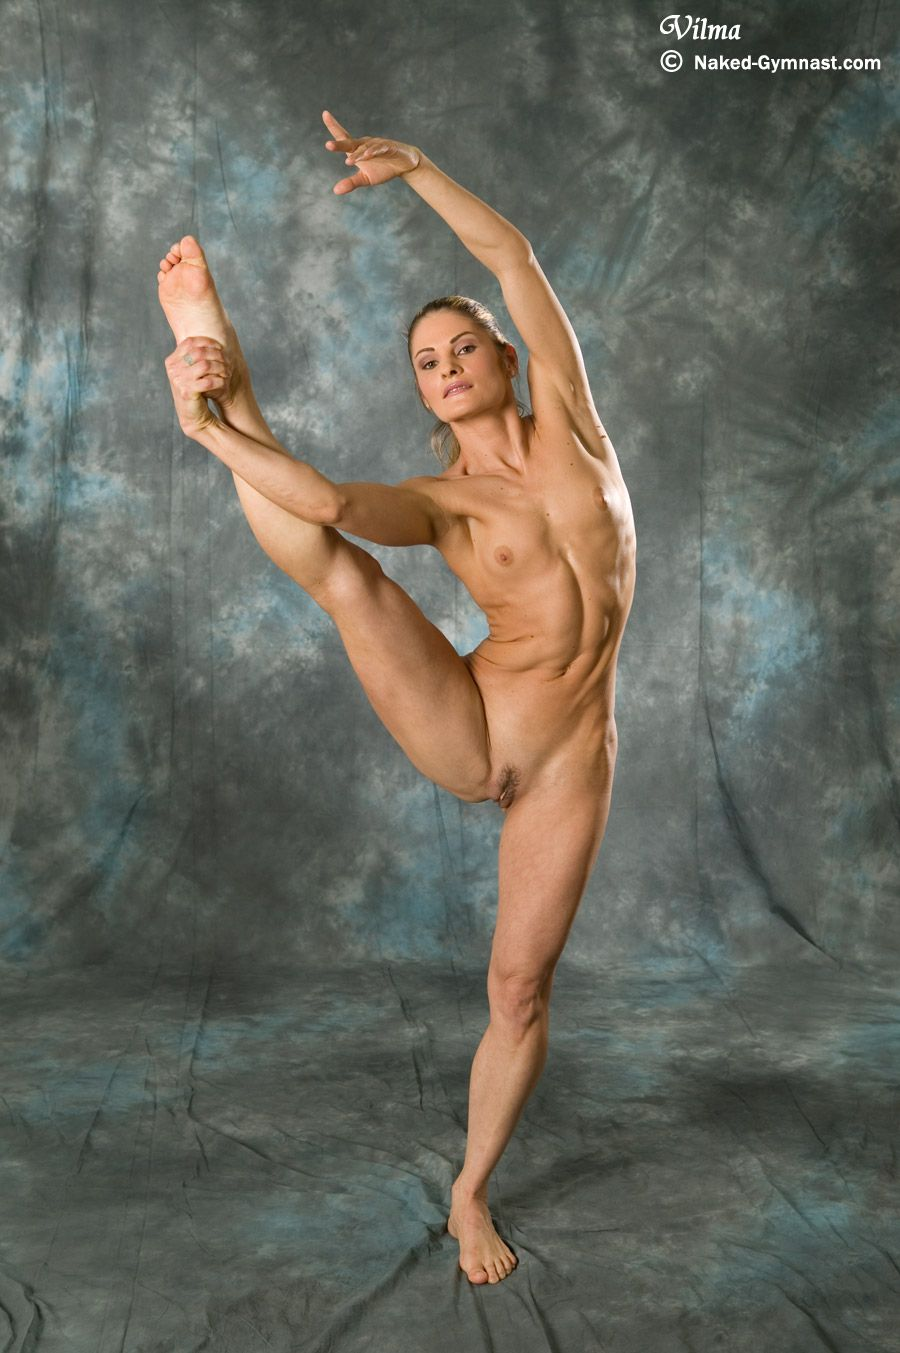 Naked Gymnast Vilma picture 7 | model reference ...